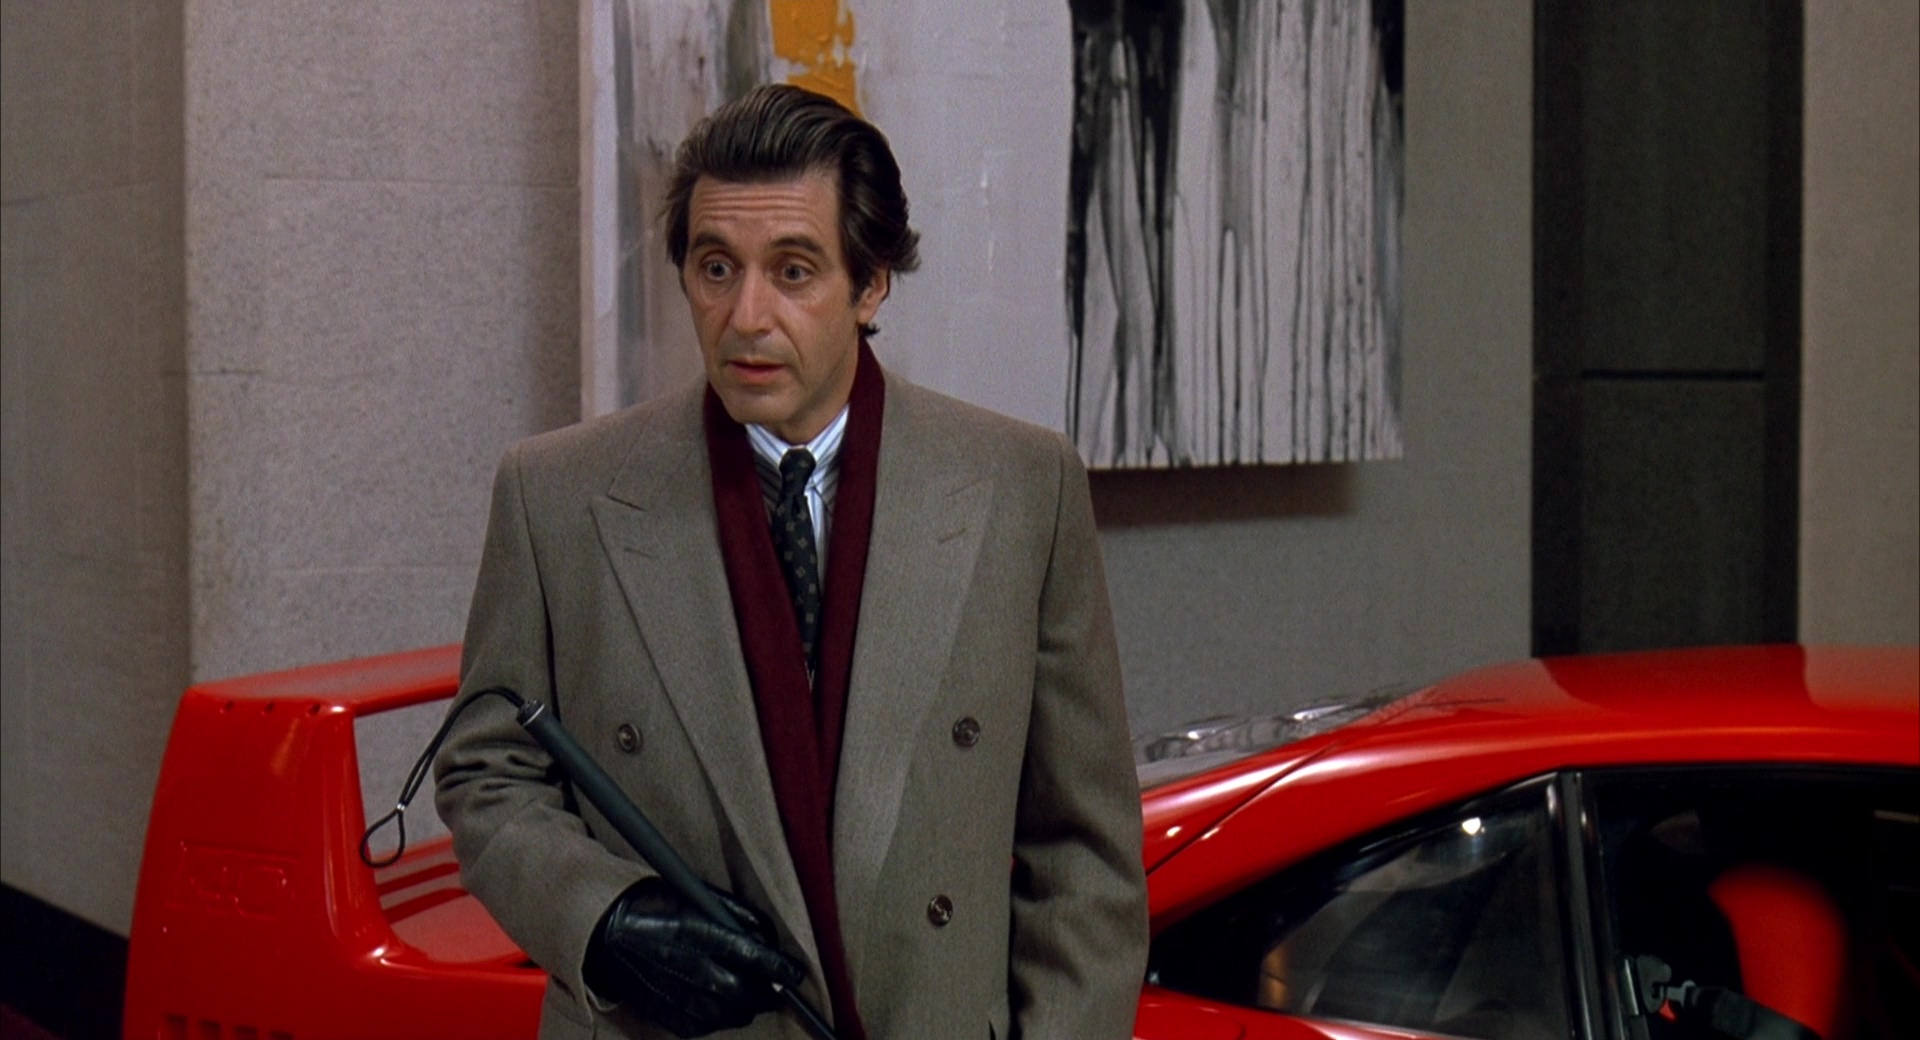 Ferrari Car Dealer Chris O Donnell And Al Pacino In